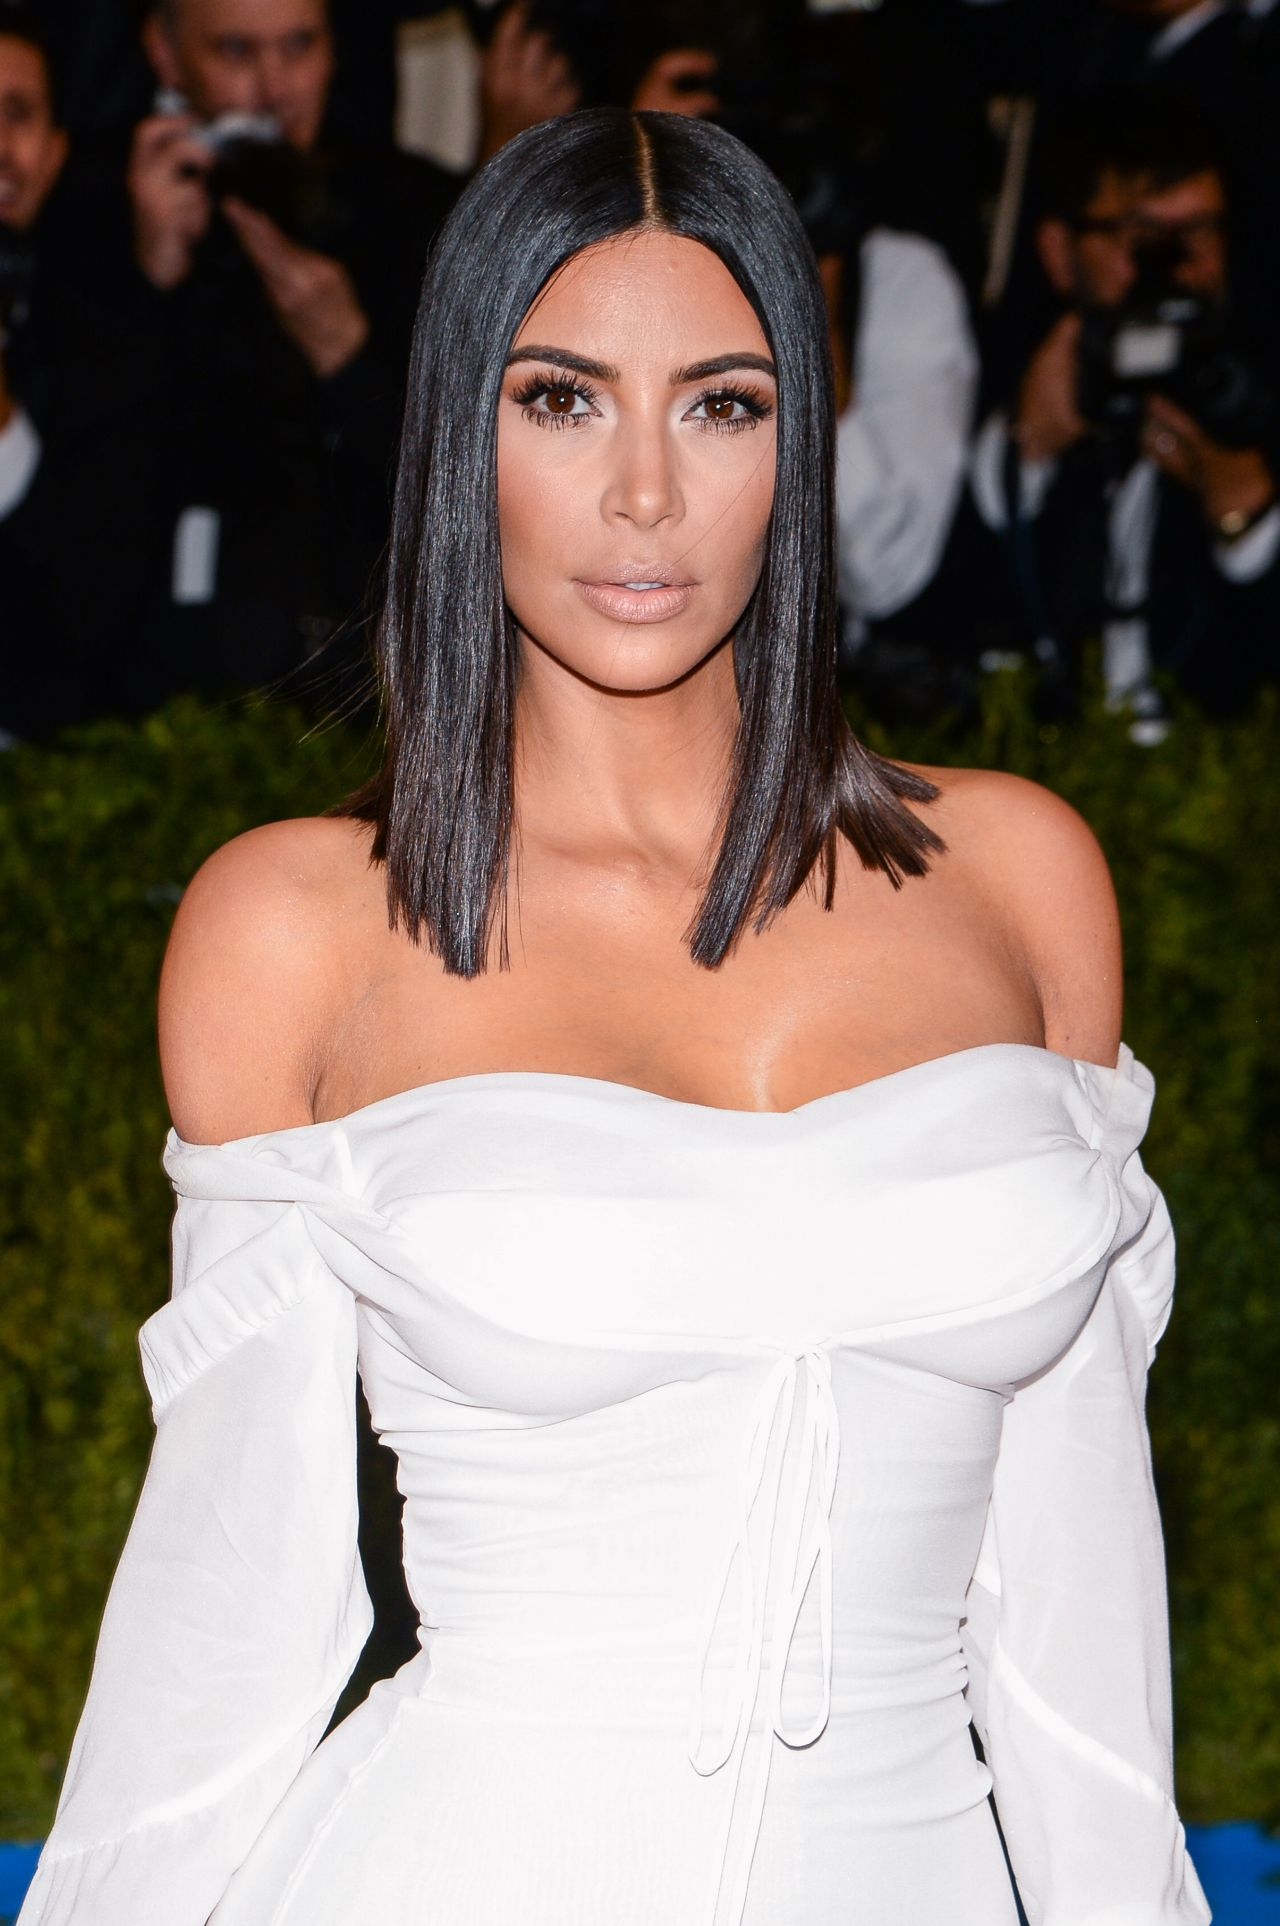 Kim Kardashian At Met Gala In New York 05012017-1351